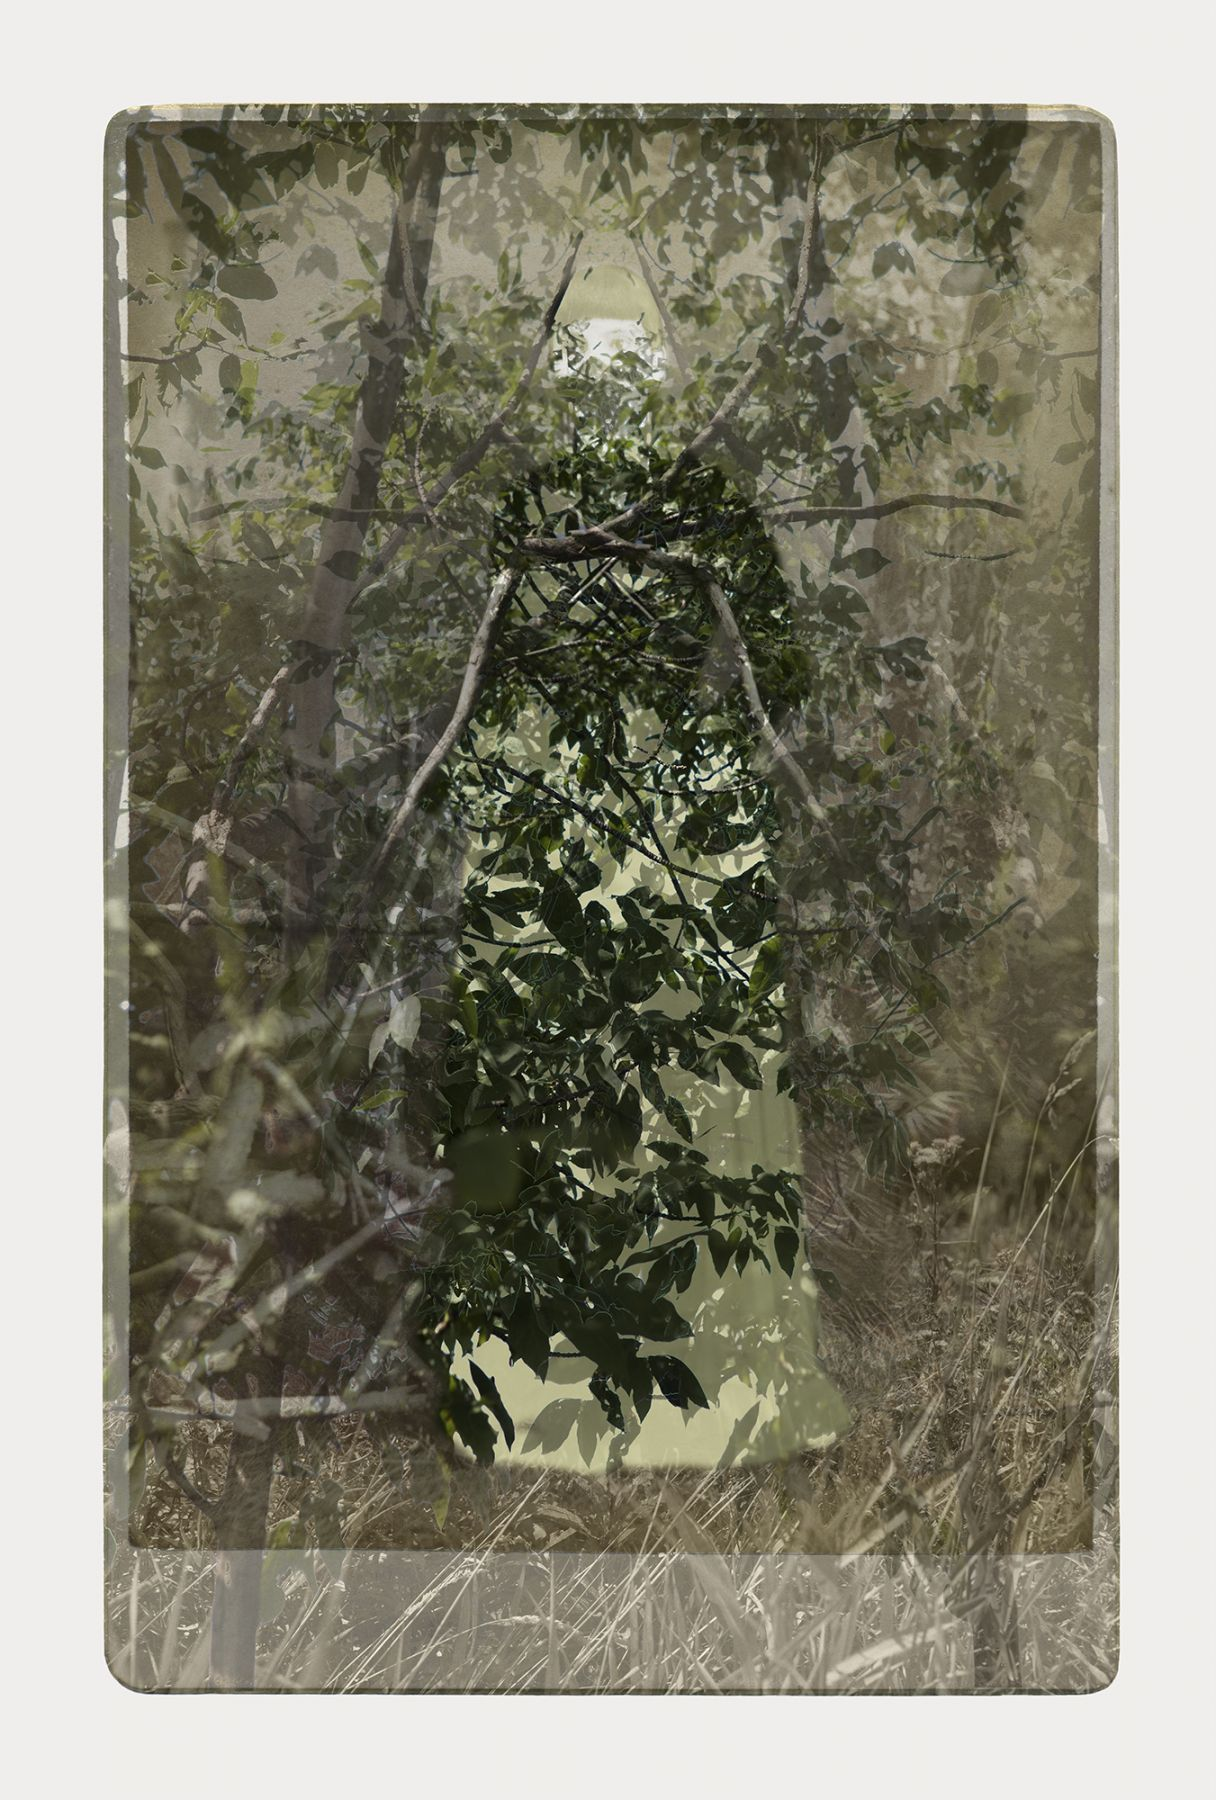 SARA ANGELUCCI | ARBORETUM (WOMAN/ASH) | PIGMENT PRINT ON ARCHIVAL PAPER | 24 X 34 INCHES | 2016